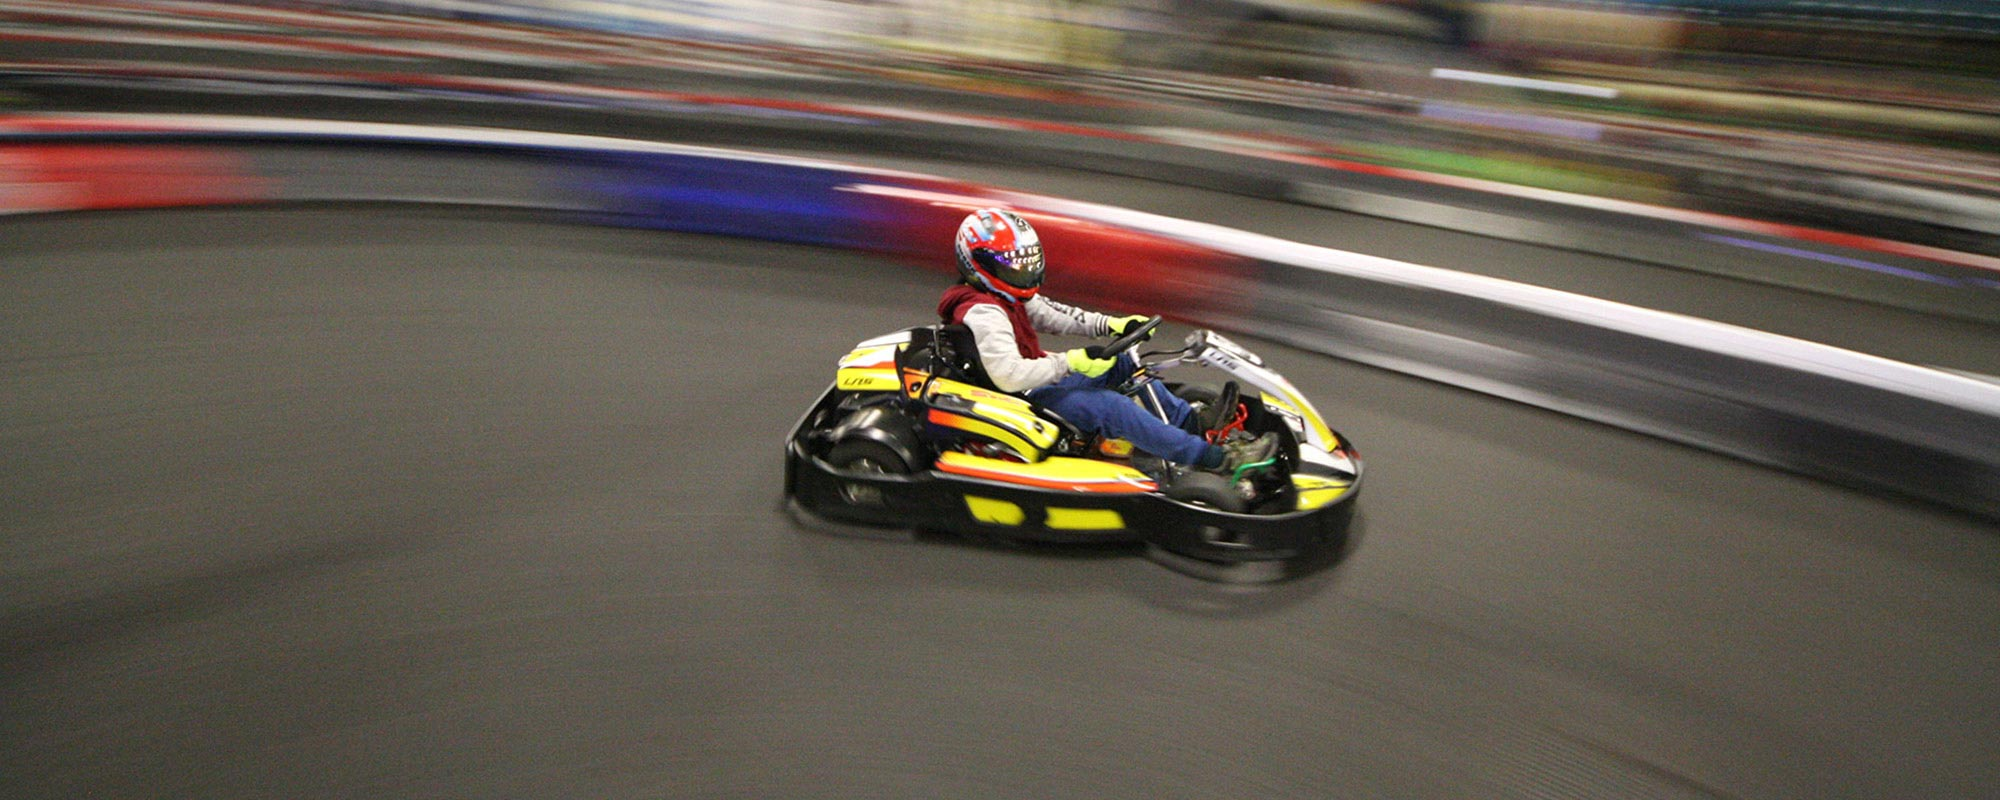 ebafkc-juniorkarting-2000x800-05